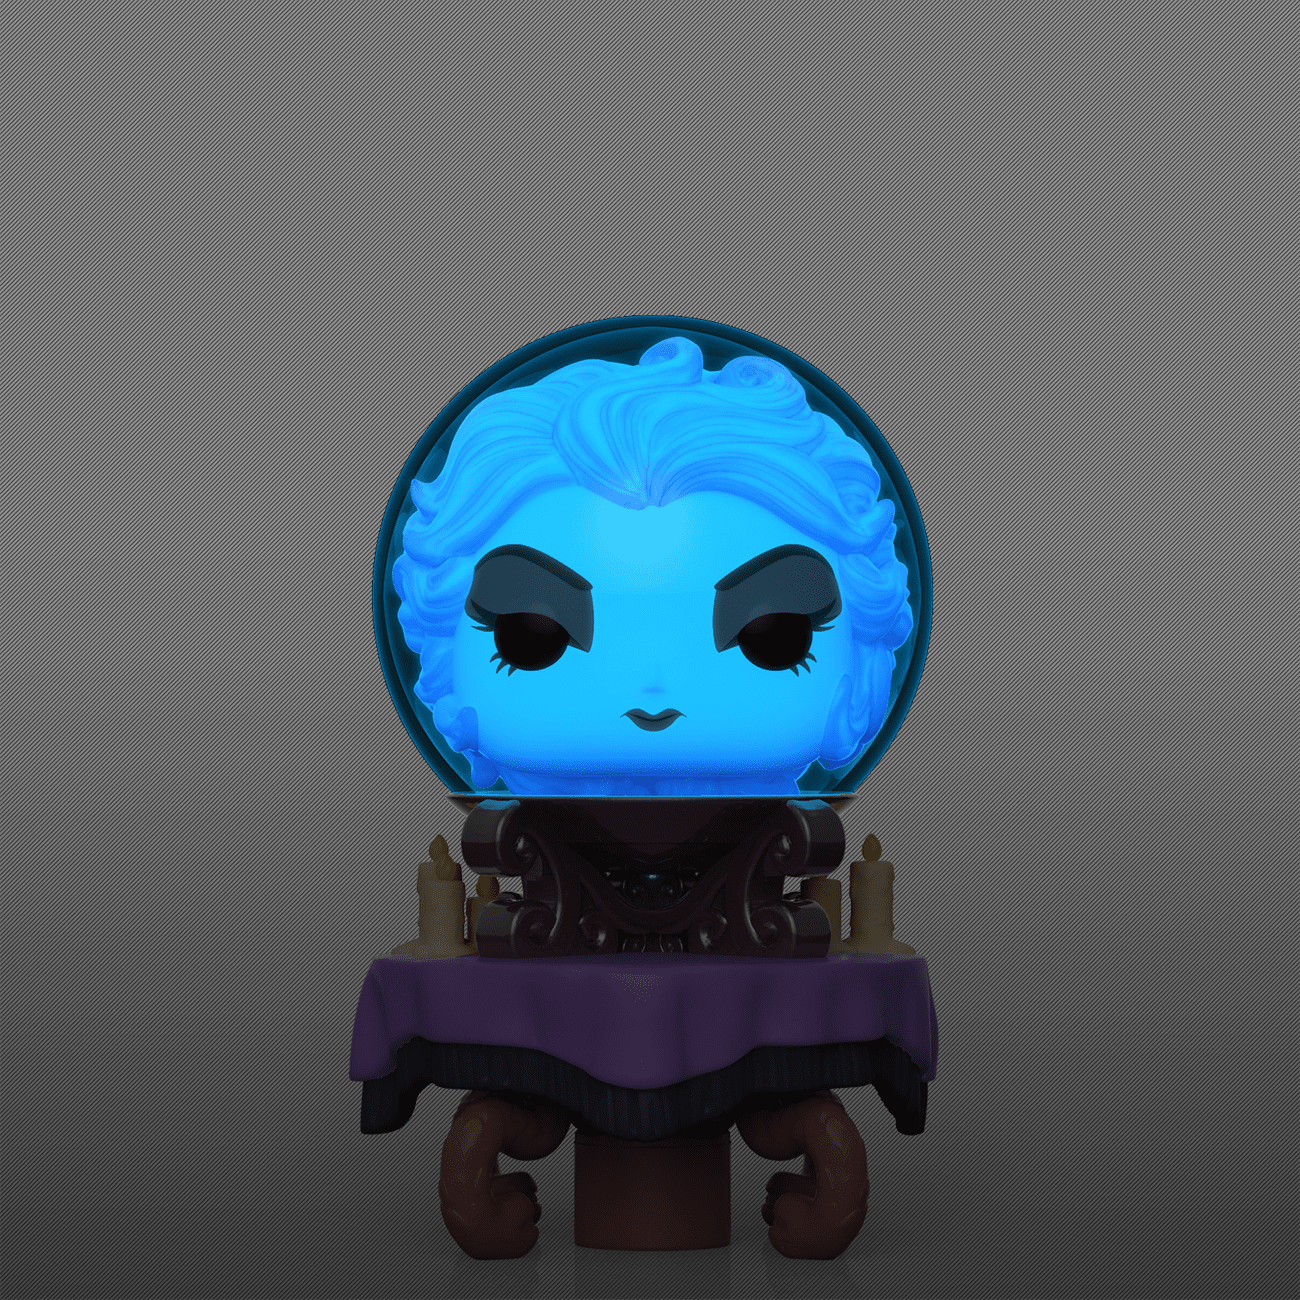 Haunted Mansion Funko POP! Collection Coming Soon 3